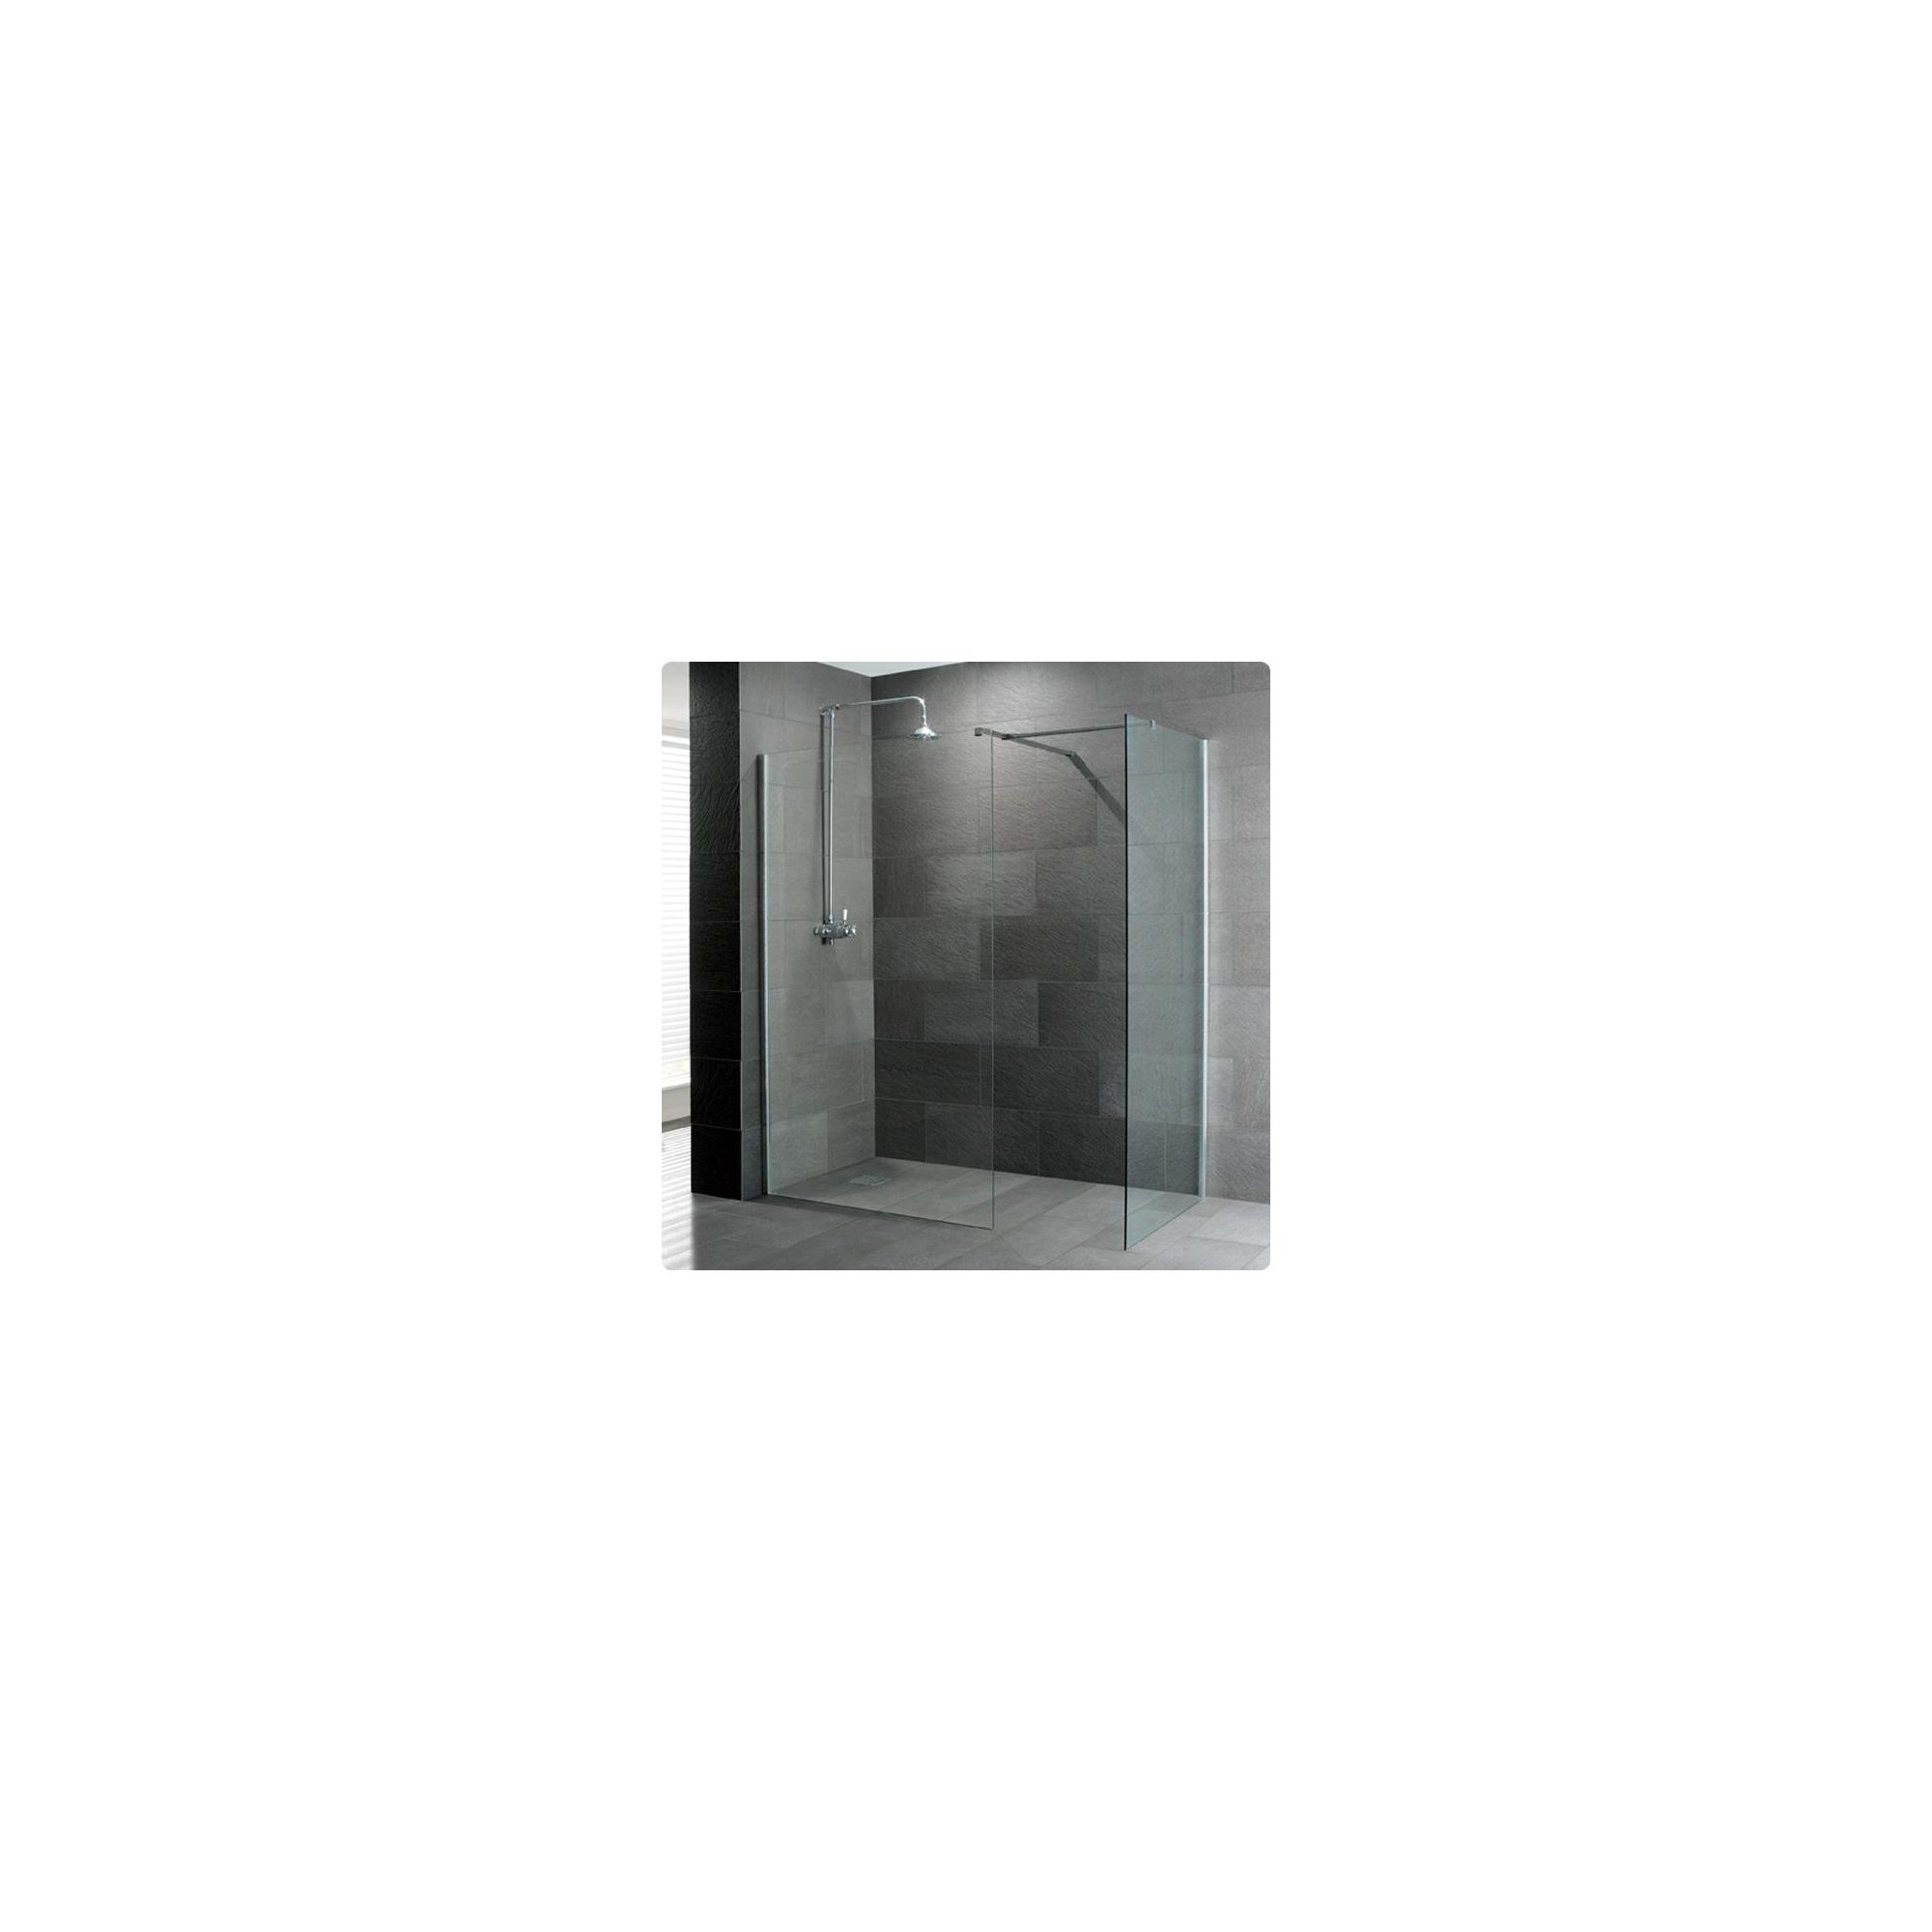 Duchy Supreme Silver Walk-In Shower Enclosure 1700mm x 800mm, Standard Tray, 8mm Glass at Tesco Direct